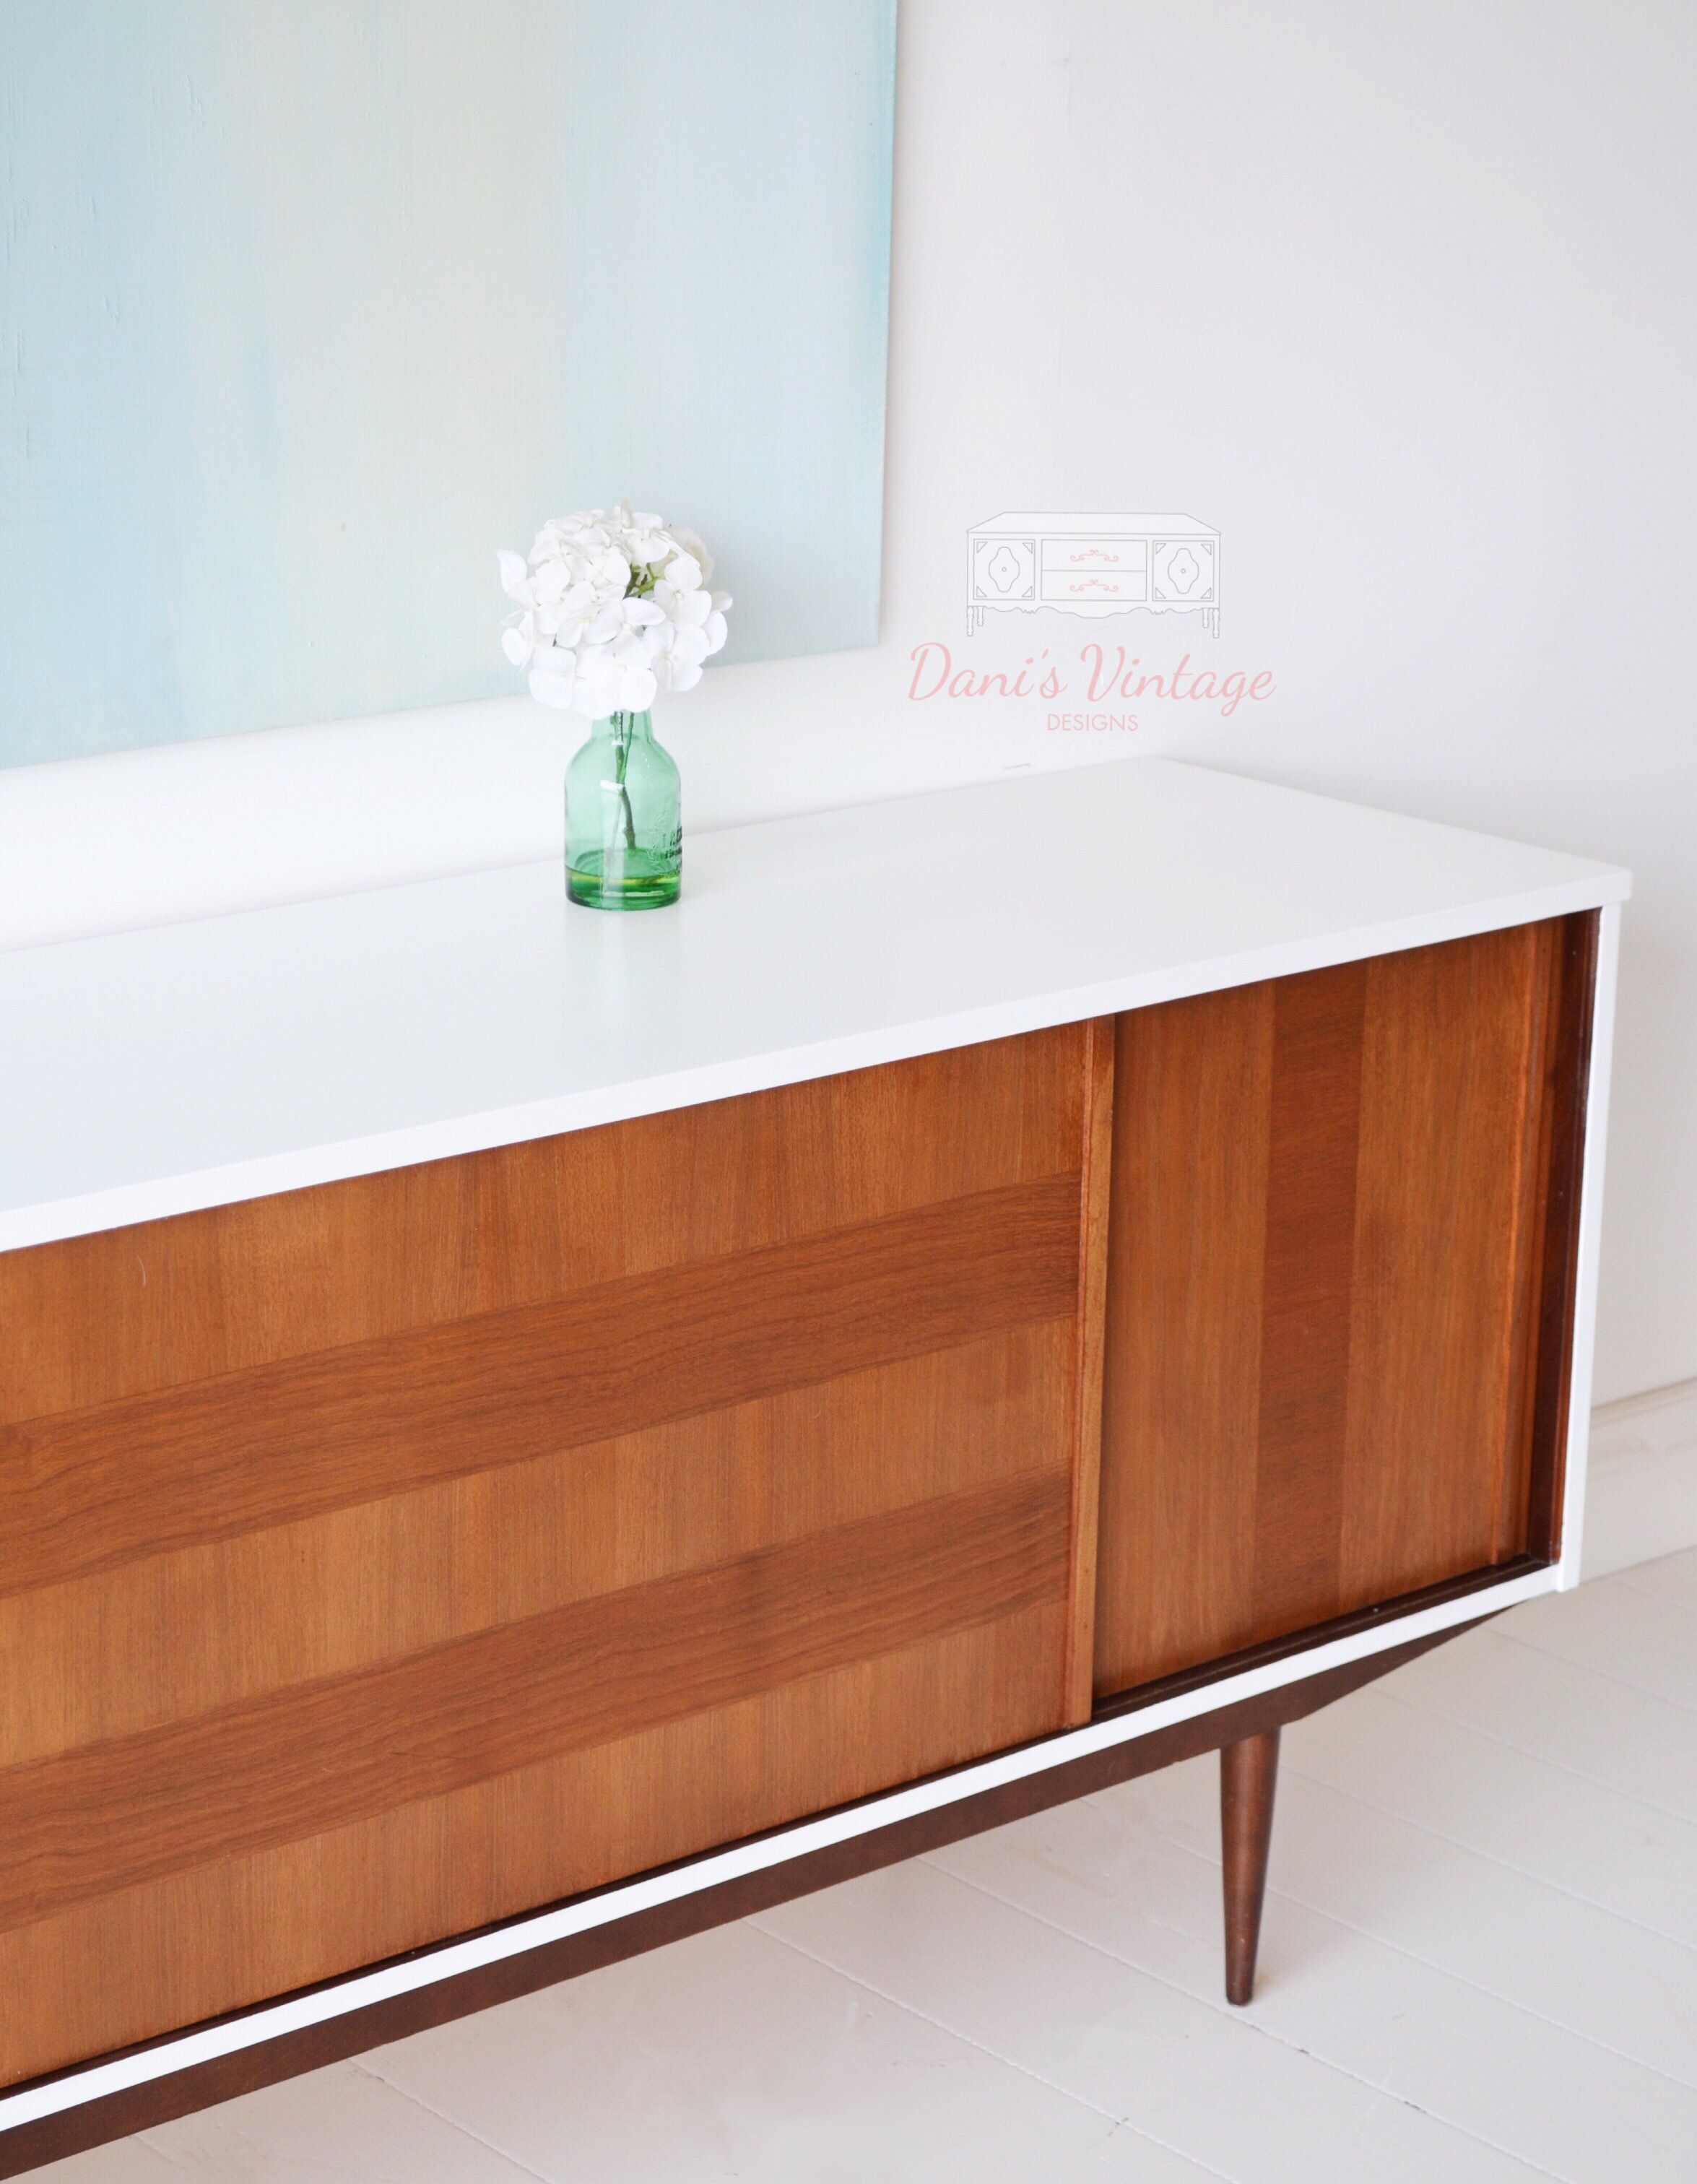 Painted White And Wood Dark Walnut Mcm Midcentury Modern Long Buffet Credenza Sideboard In 2020 Mid Century Modern Credenza Modern Credenza Midcentury Modern